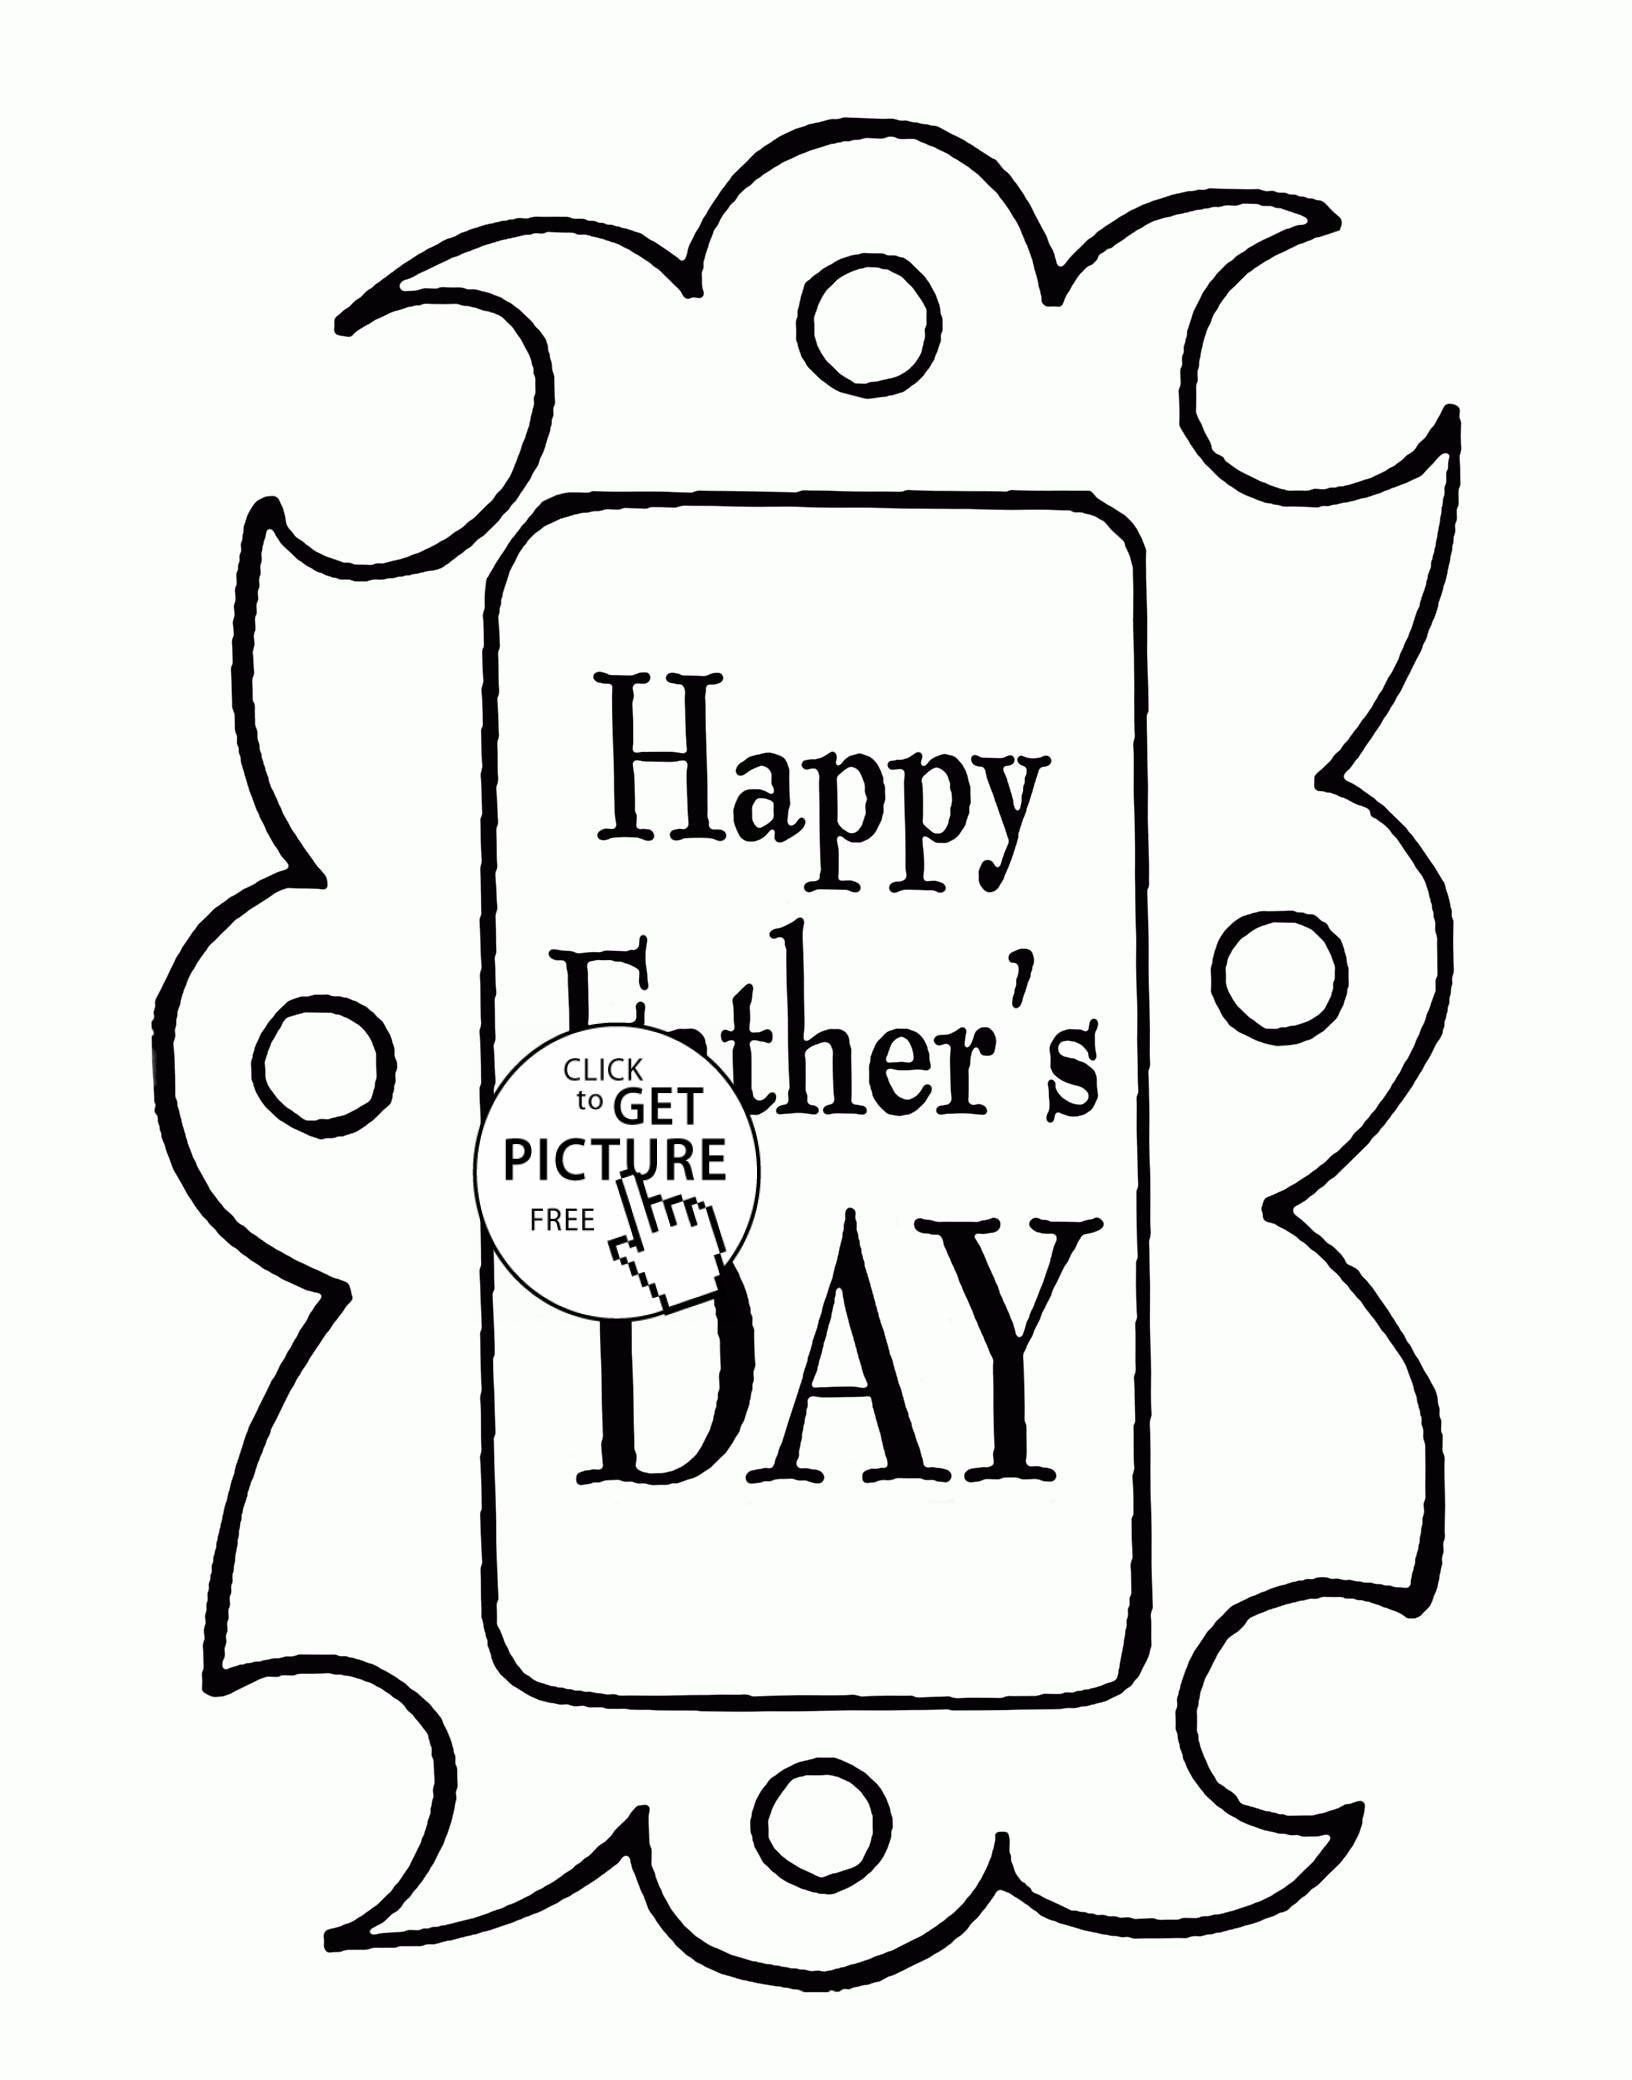 happy fathers day coloring pages printable - happy fathers day coloring page for kids holidays coloring pages printables free